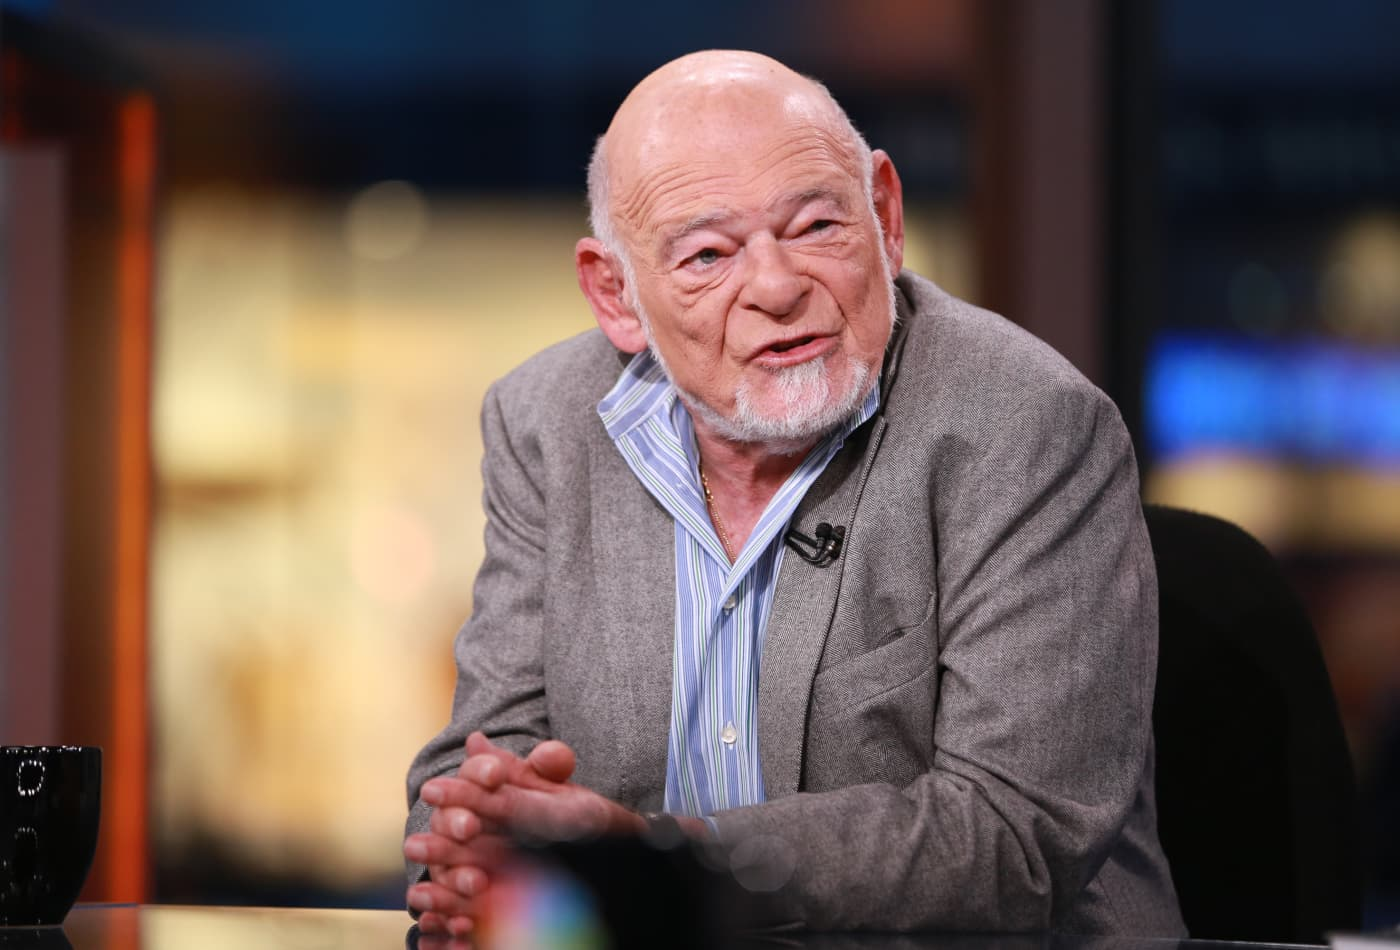 Real estate tycoon Sam Zell slams WeWork: 'Every single company in this space has gone broke'